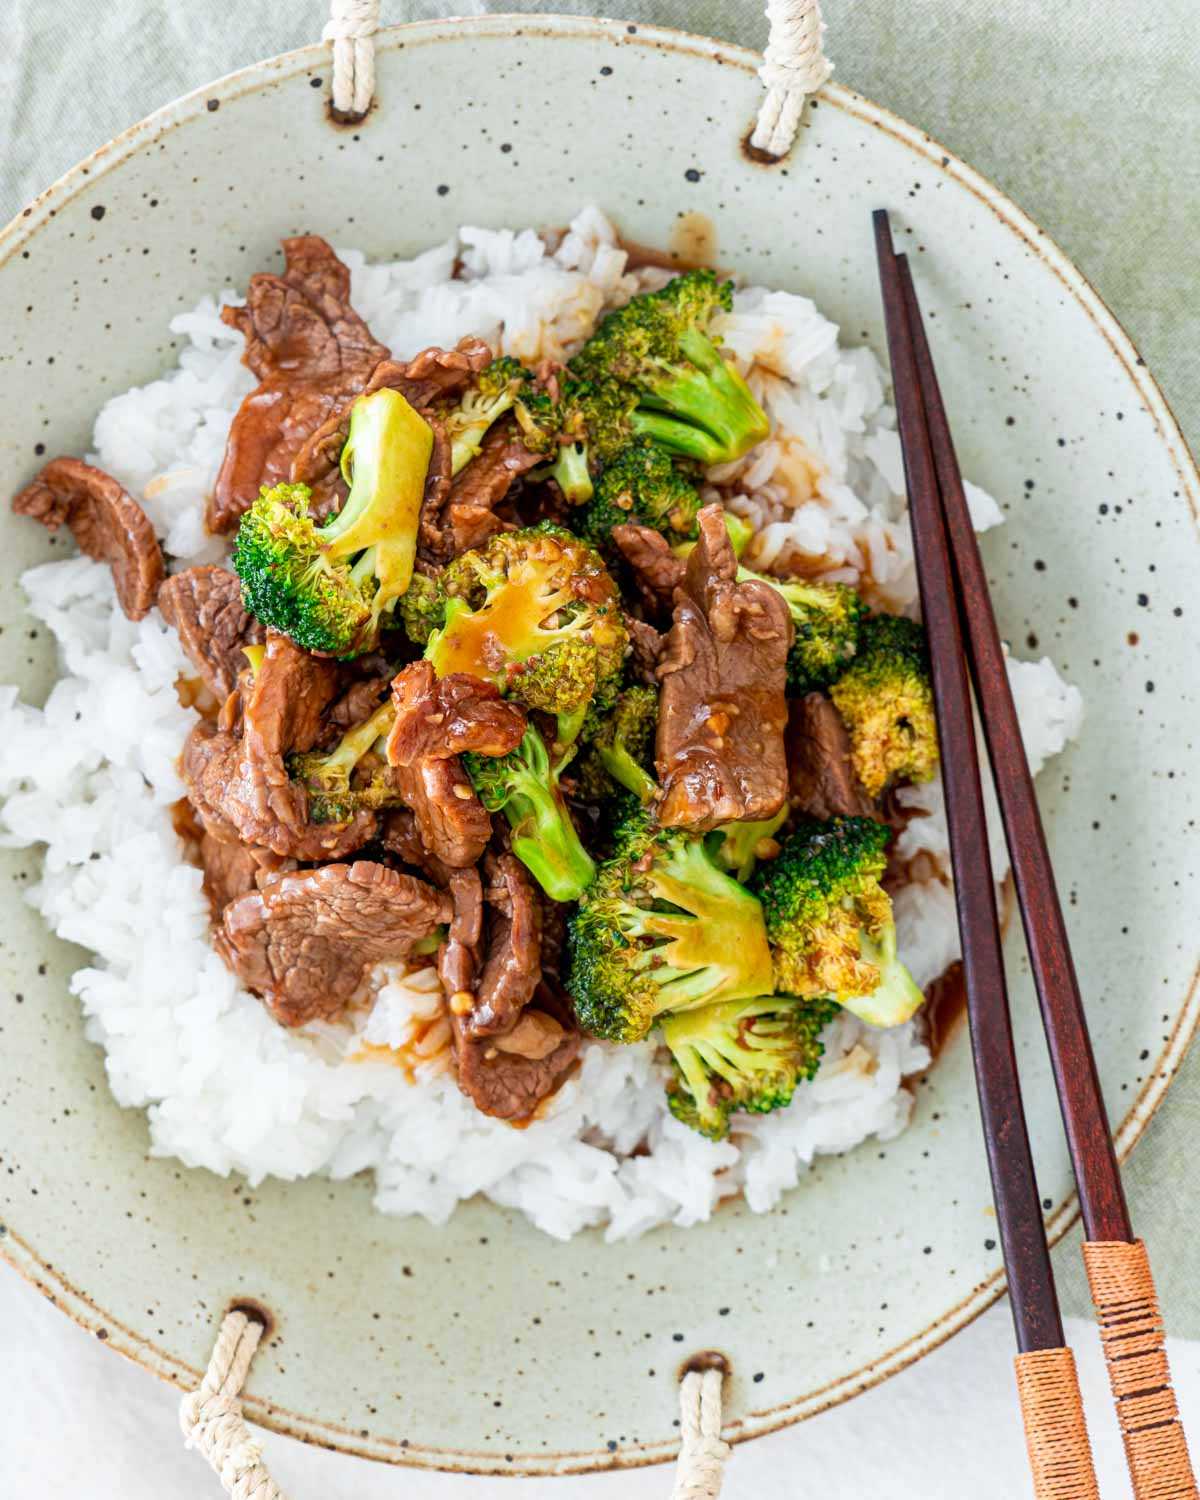 overhead shot of beef and broccoli over a bed of rice in a plate with chopsticks